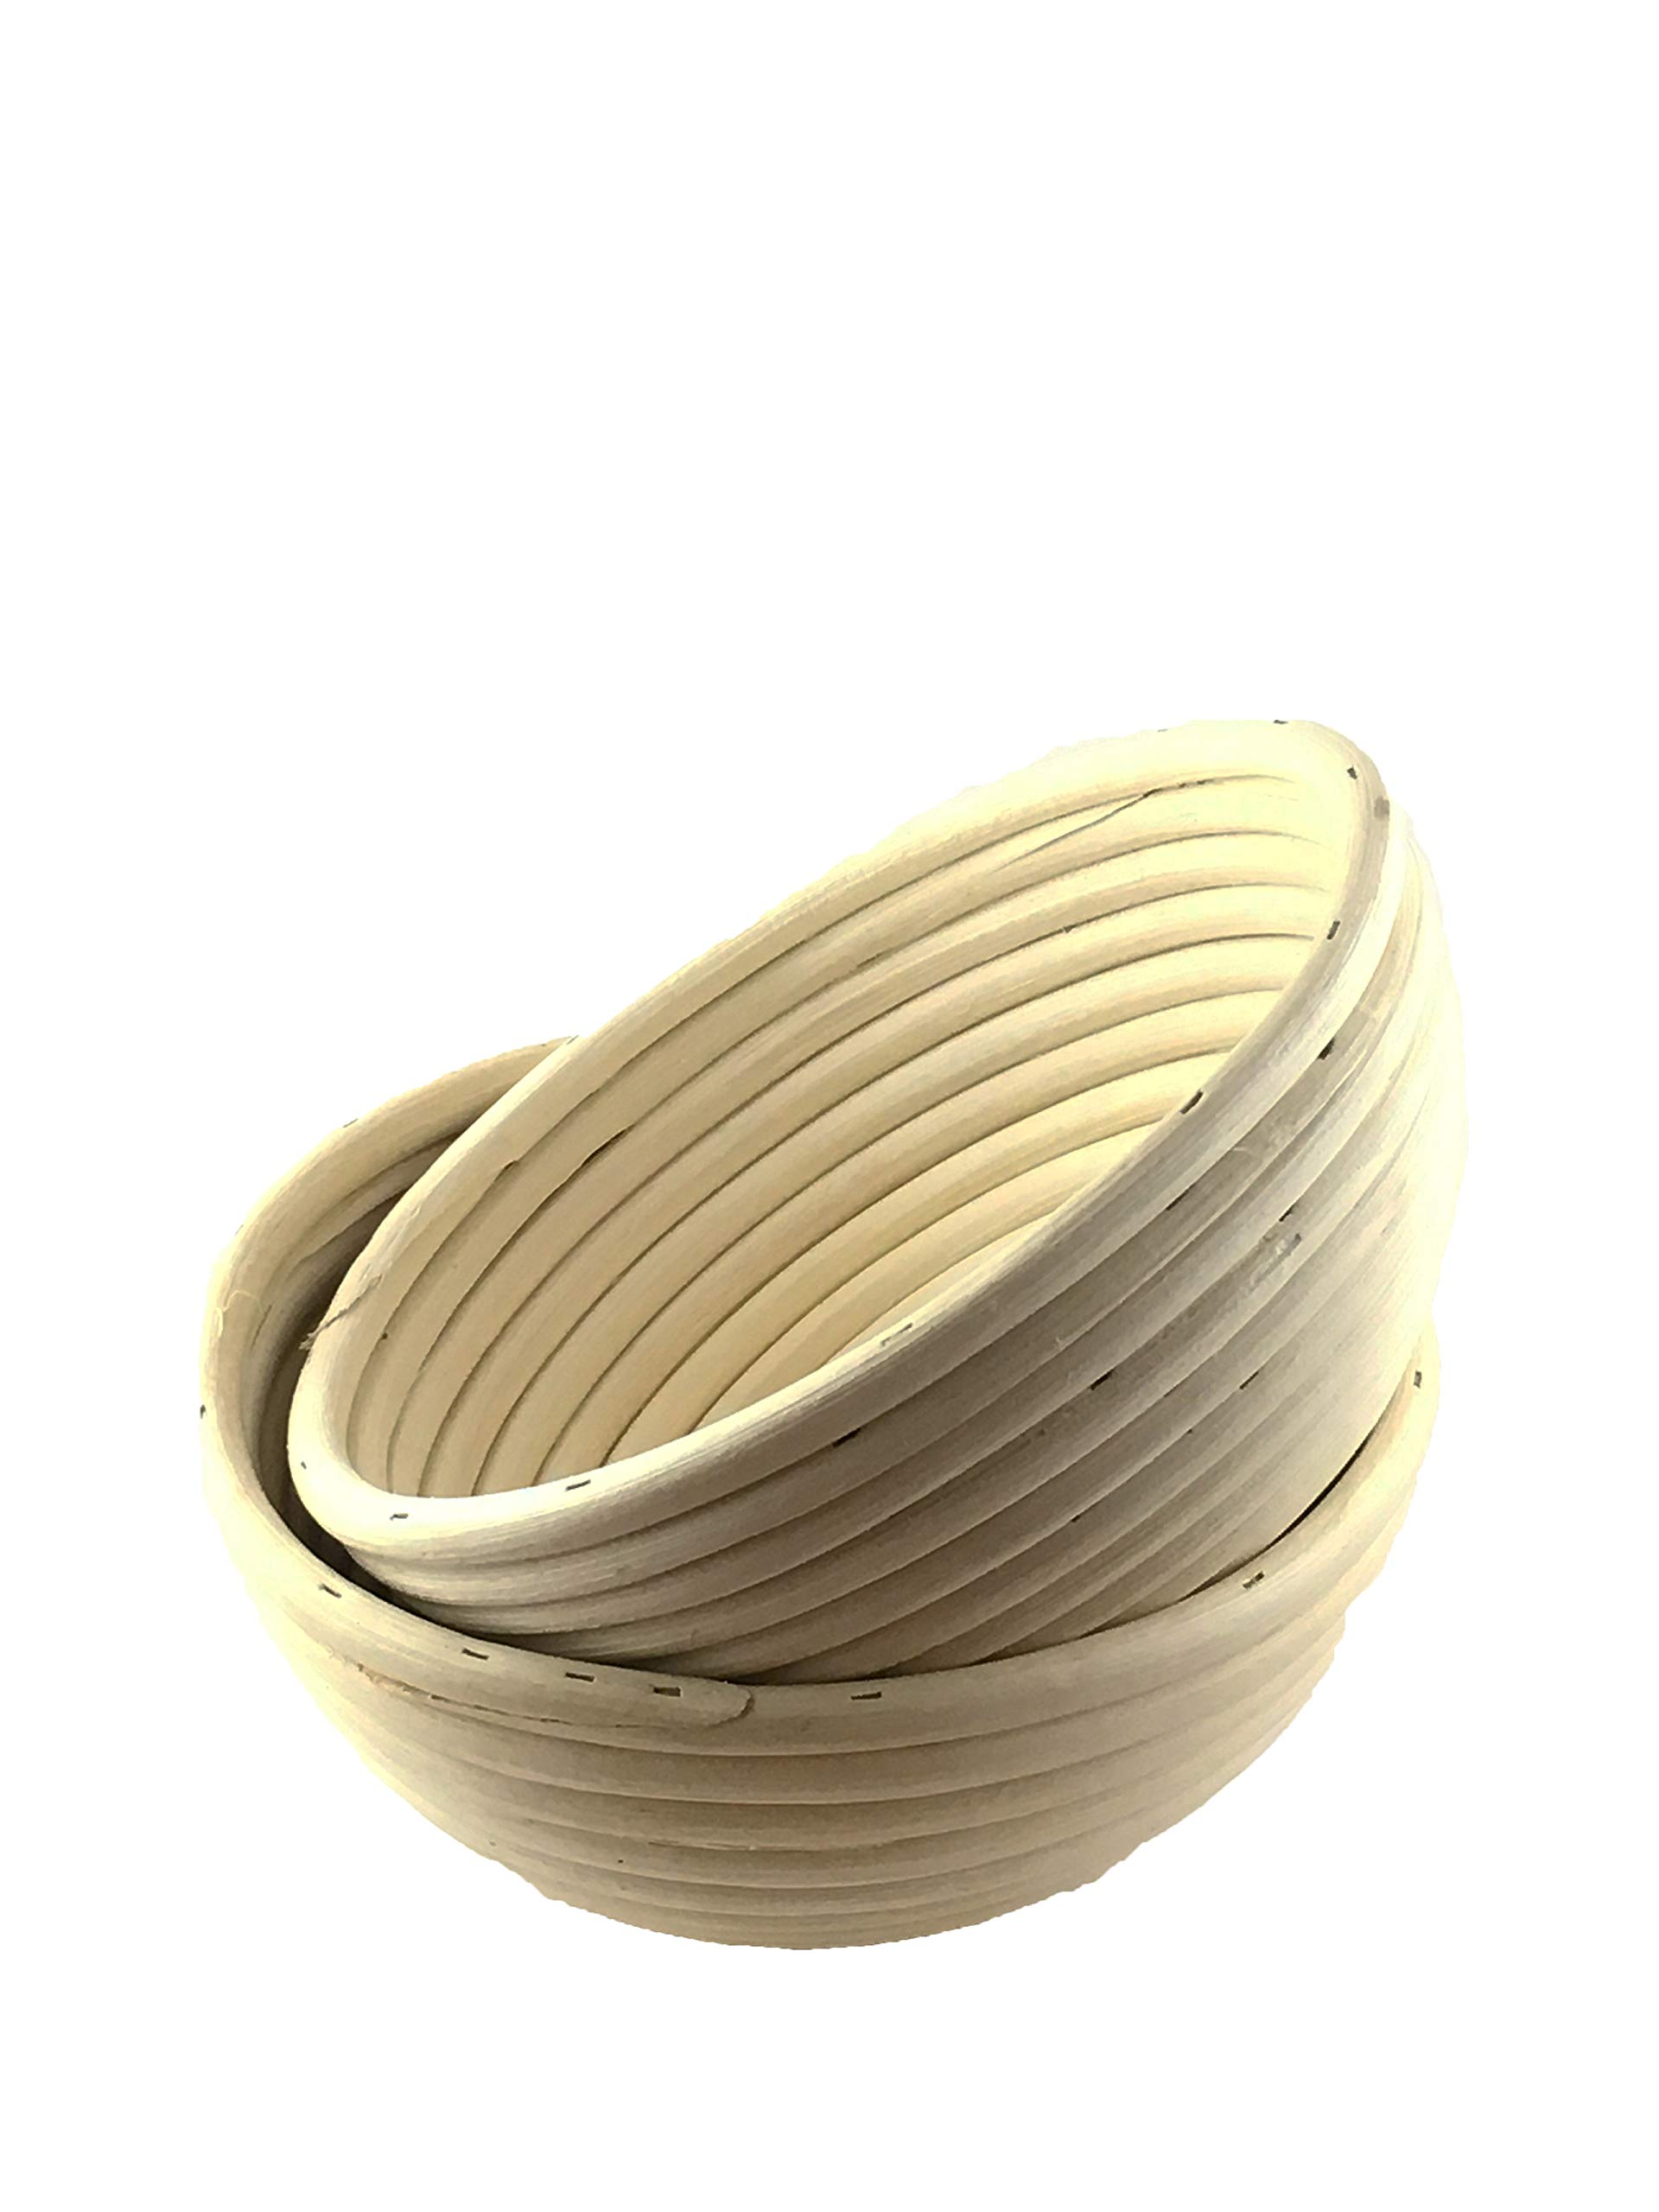 7 Inch Round Proofing Basket (Pack of 2) by Artisan Baking Co. Manufactured for professional made of rattan. Great for homemade sour dough bread (2) by Artisan Baking Co